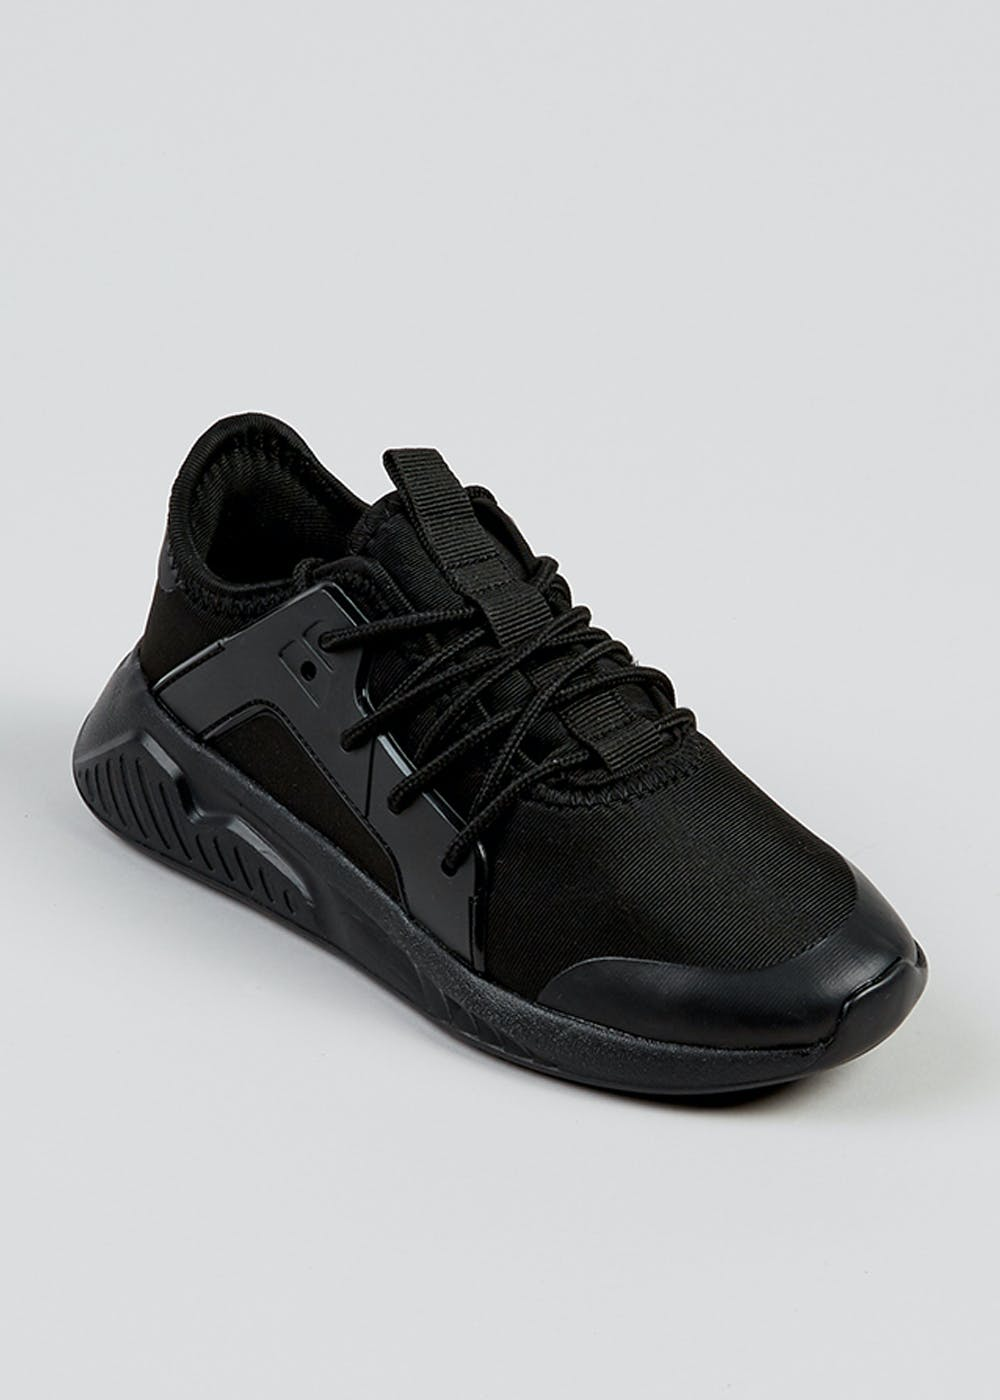 Boys Trainers - Slip on, lace up